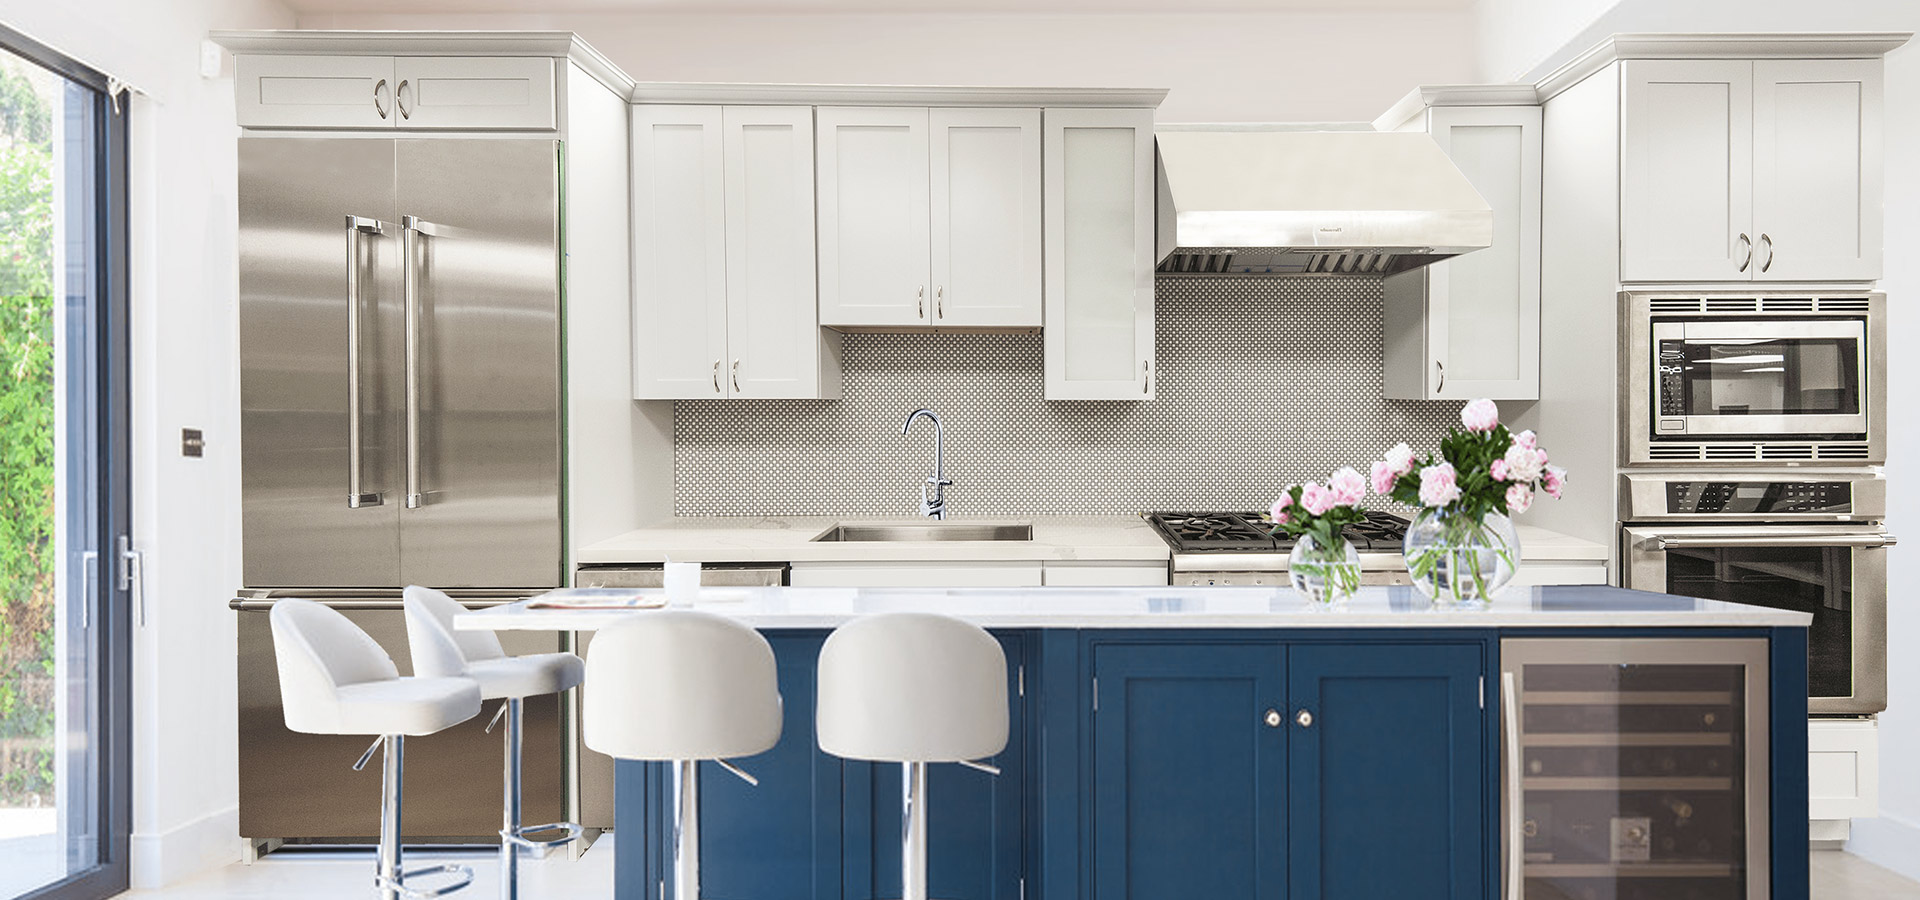 Kitchen Cabinets East Star Building Supply